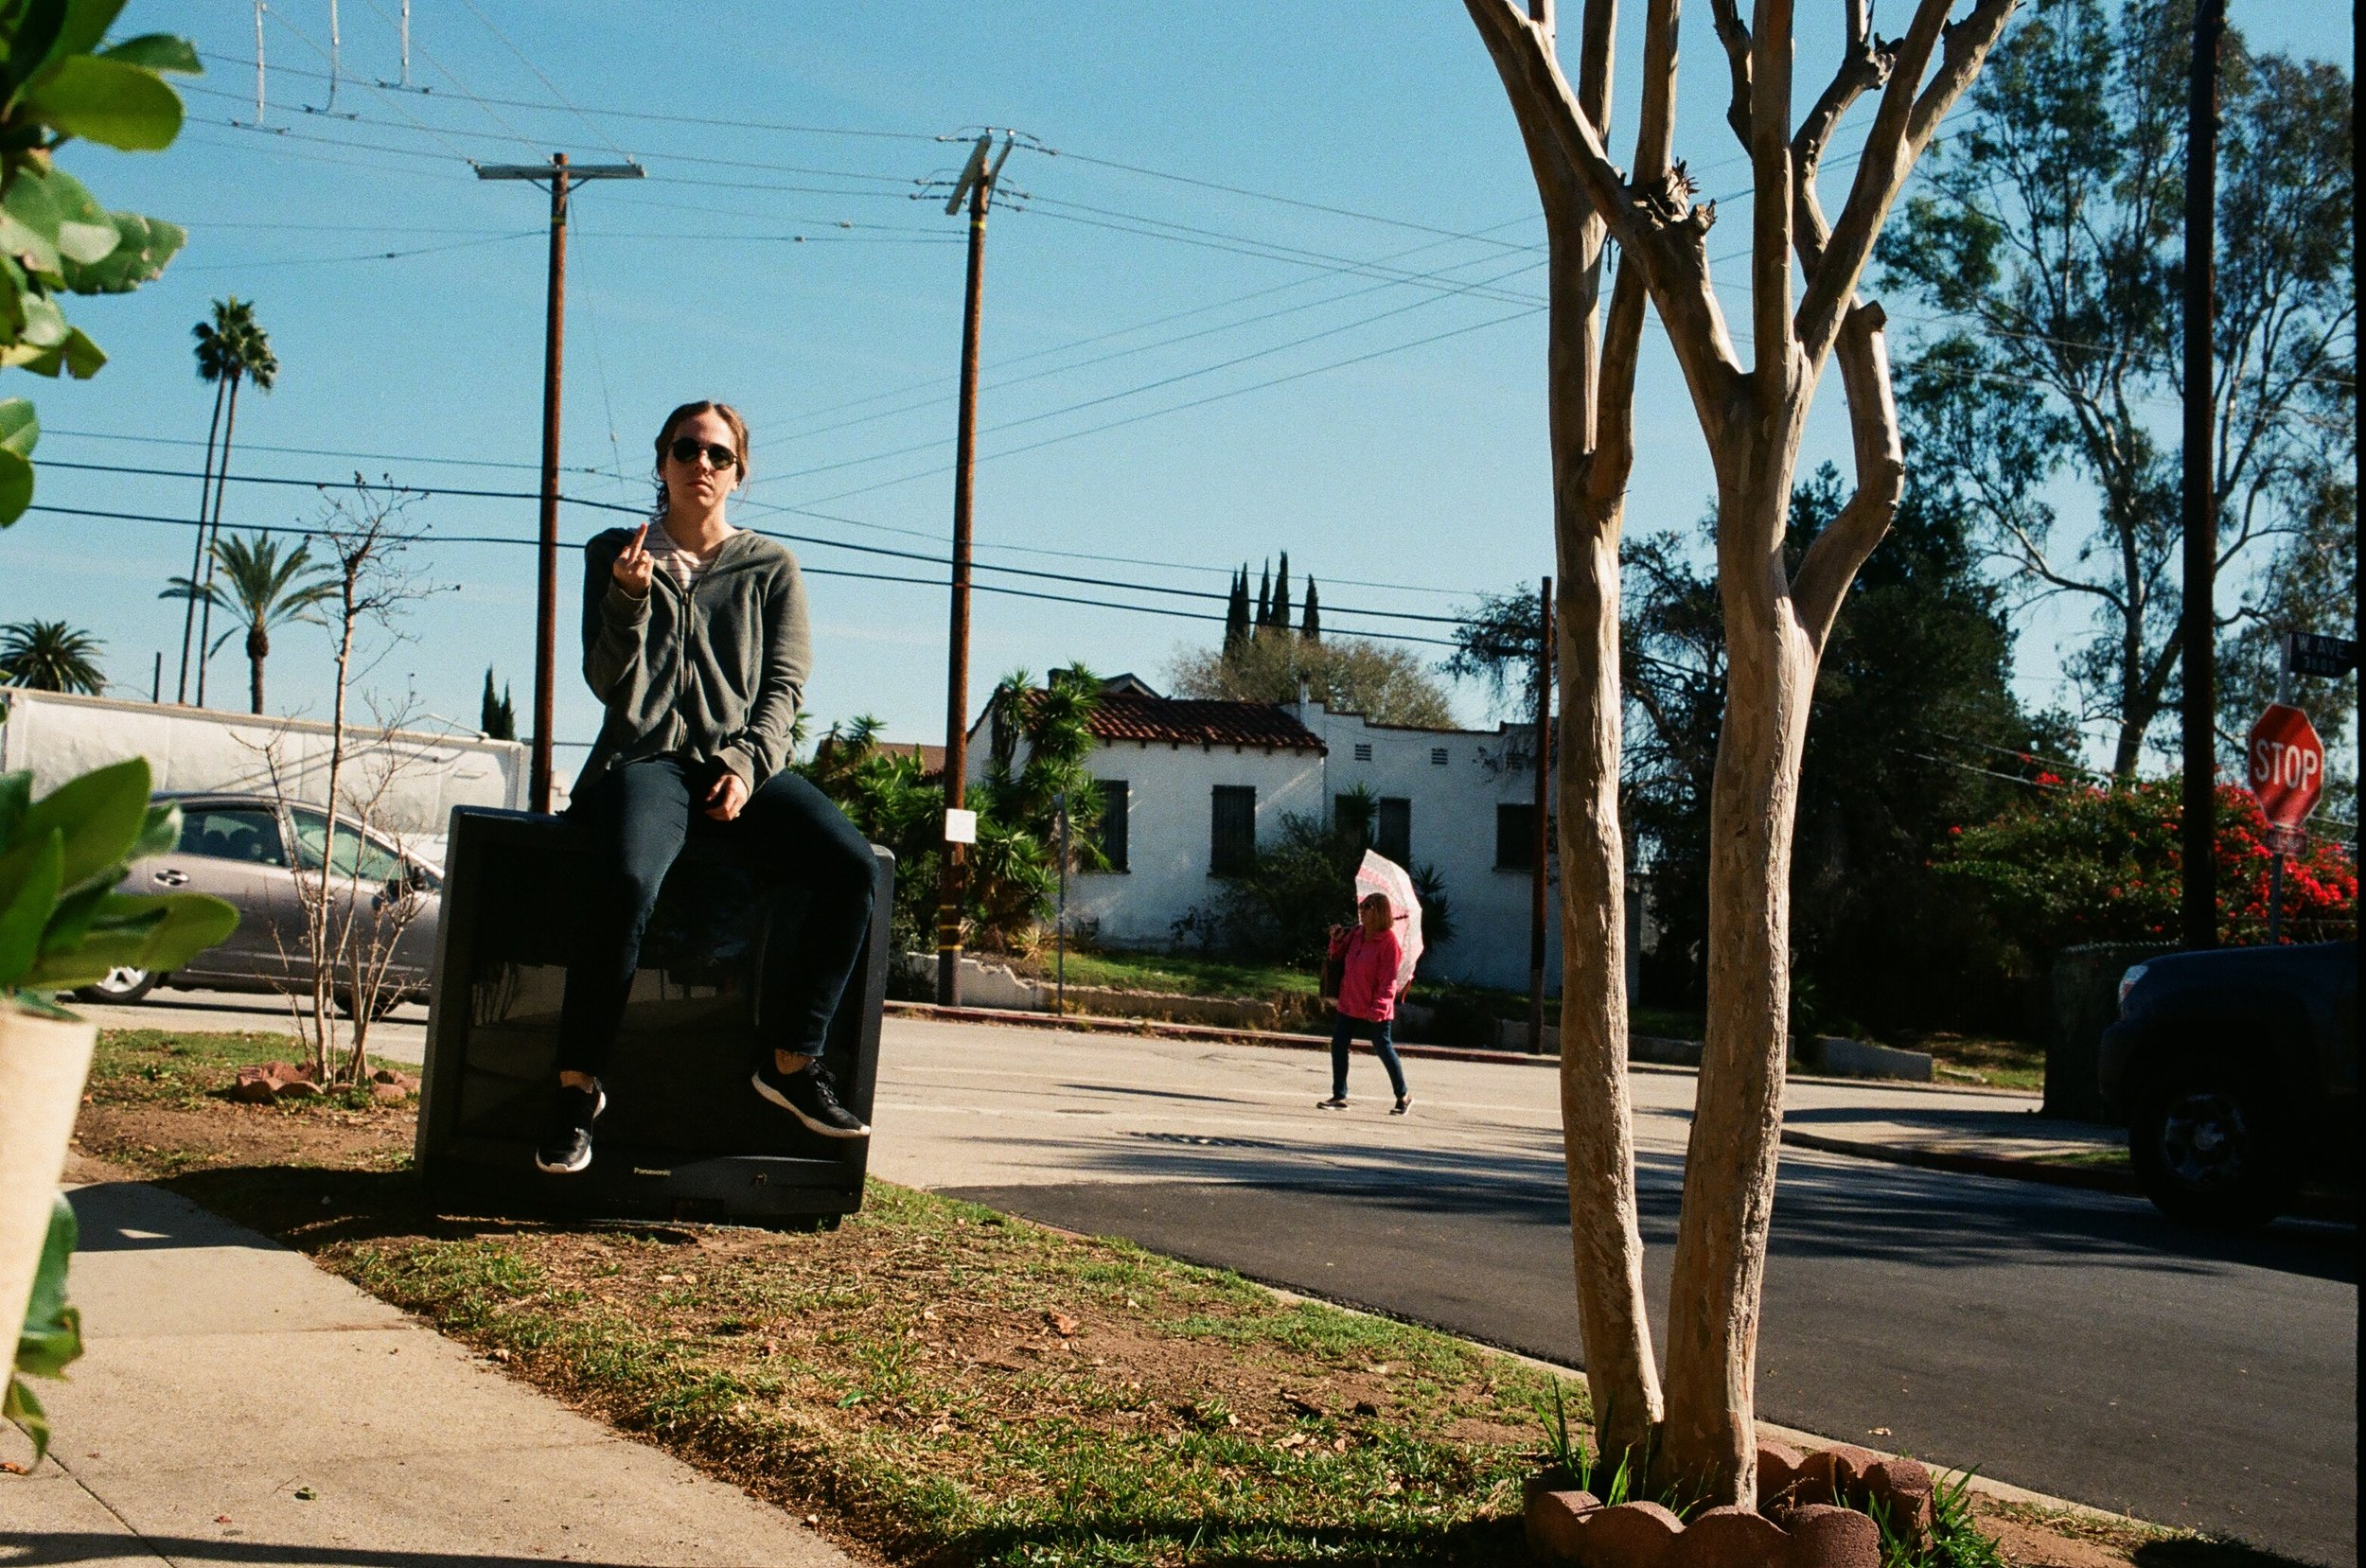 birdwatchingwitheb 35mm film glassell park.jpg